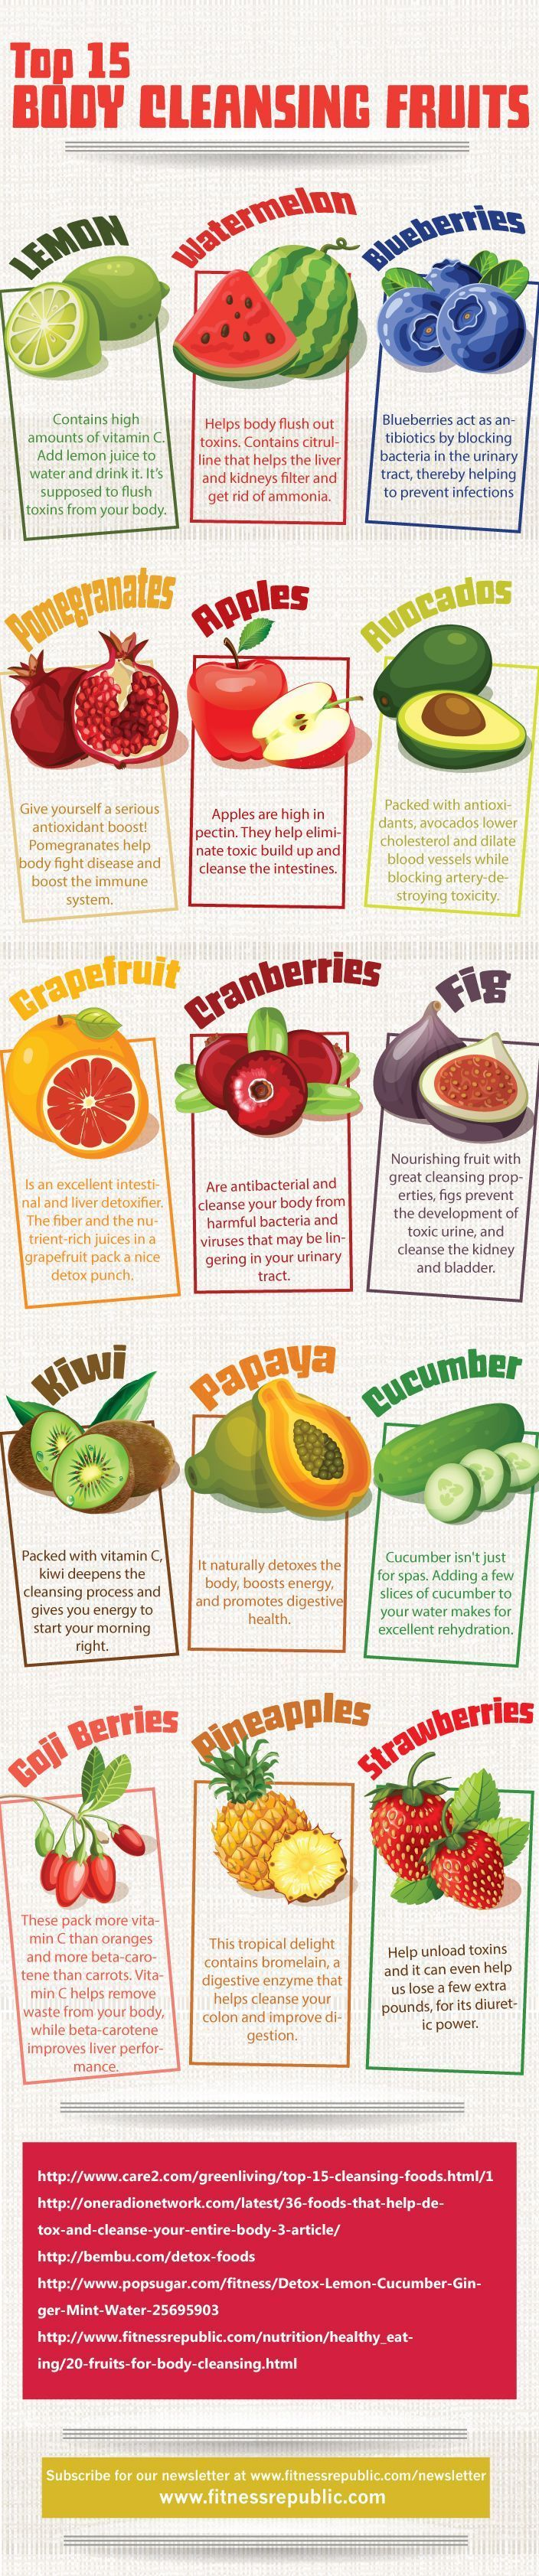 15 Body Cleansing Fruits :Fruit fasts or cleanses are said to allow your digestive system to detoxify, get rid of toxins and wastes, and help you to naturally restore harmony and balance to your entire body. In this infographic found on Pinterest, we are introduced to what are said to be the Top 15 Body […]